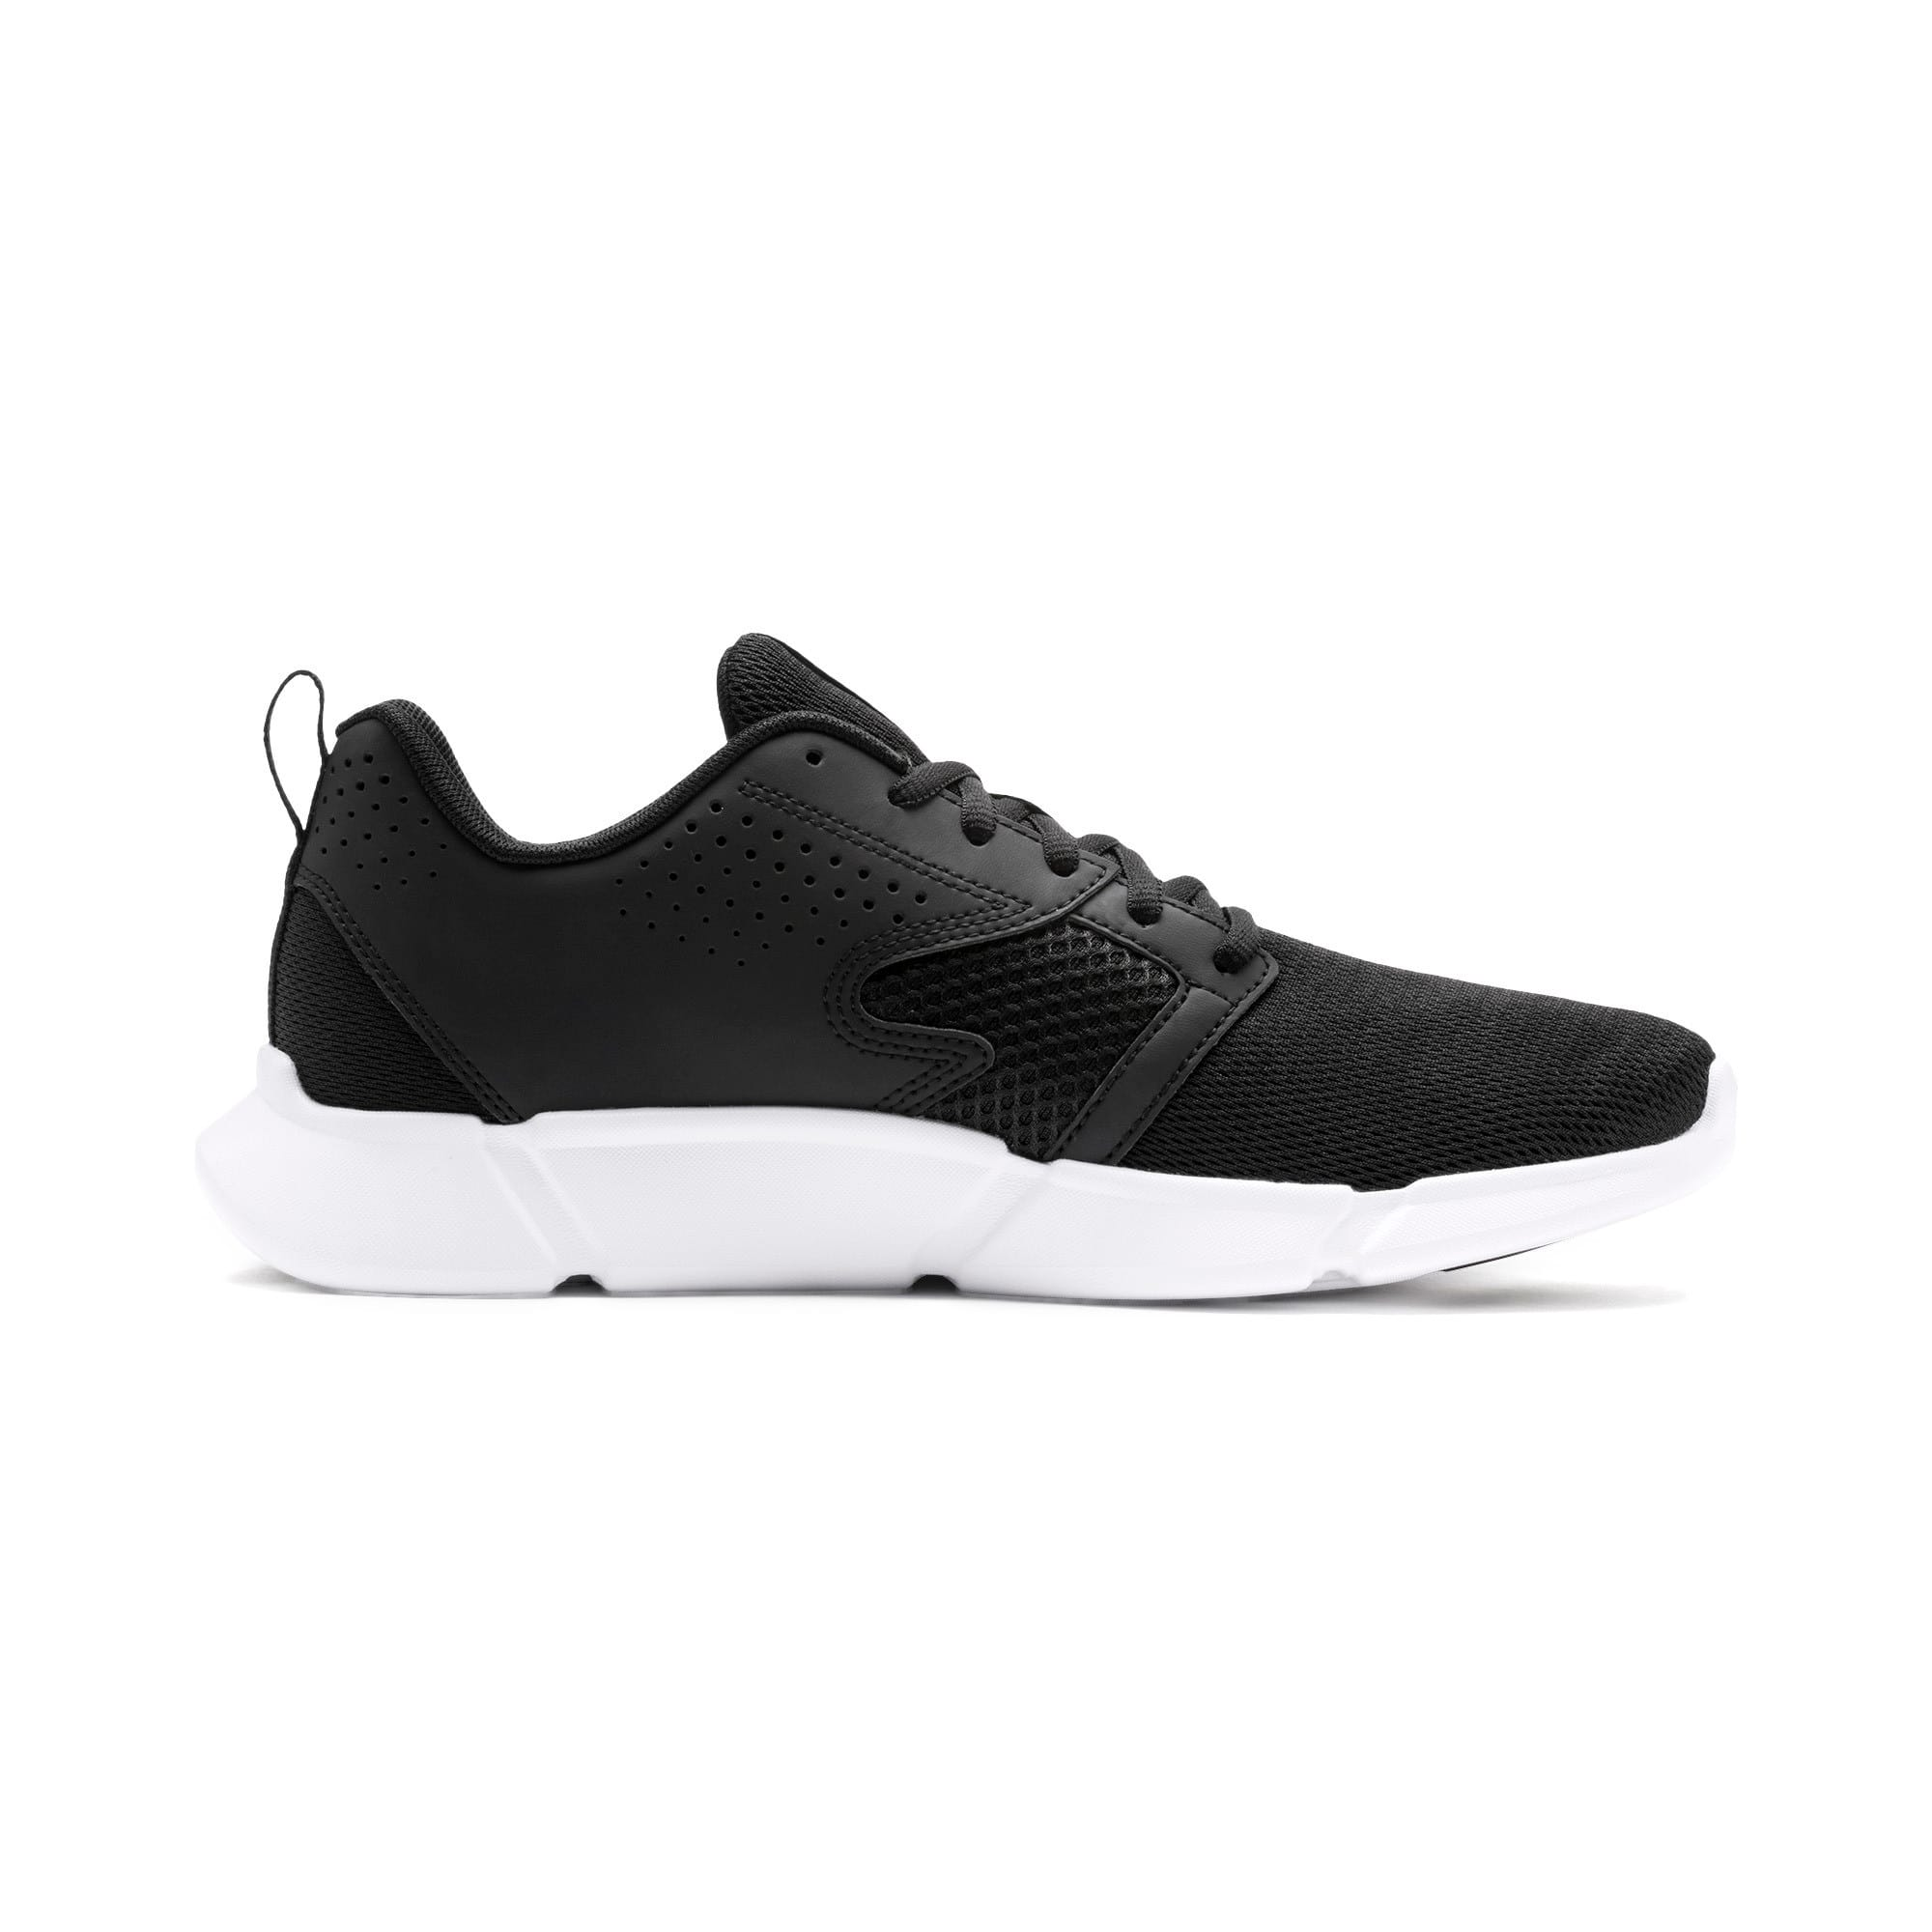 Thumbnail 7 of INTERFLEX Modern Running Shoes, Puma Black-Puma White, medium-IND